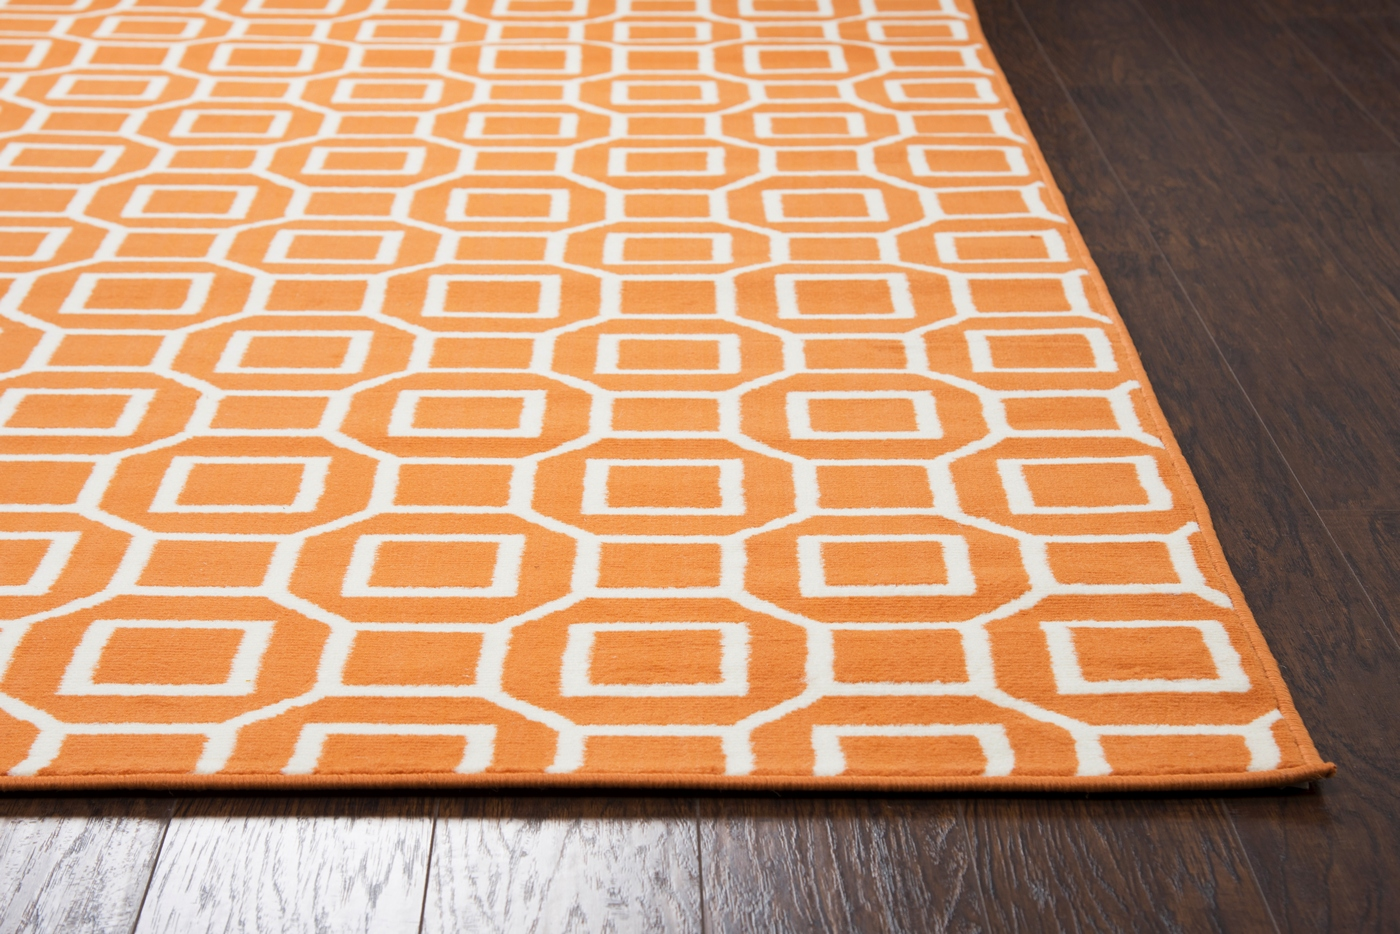 Glendale geometric squares pattern area rug in orange for Geometric pattern area rugs